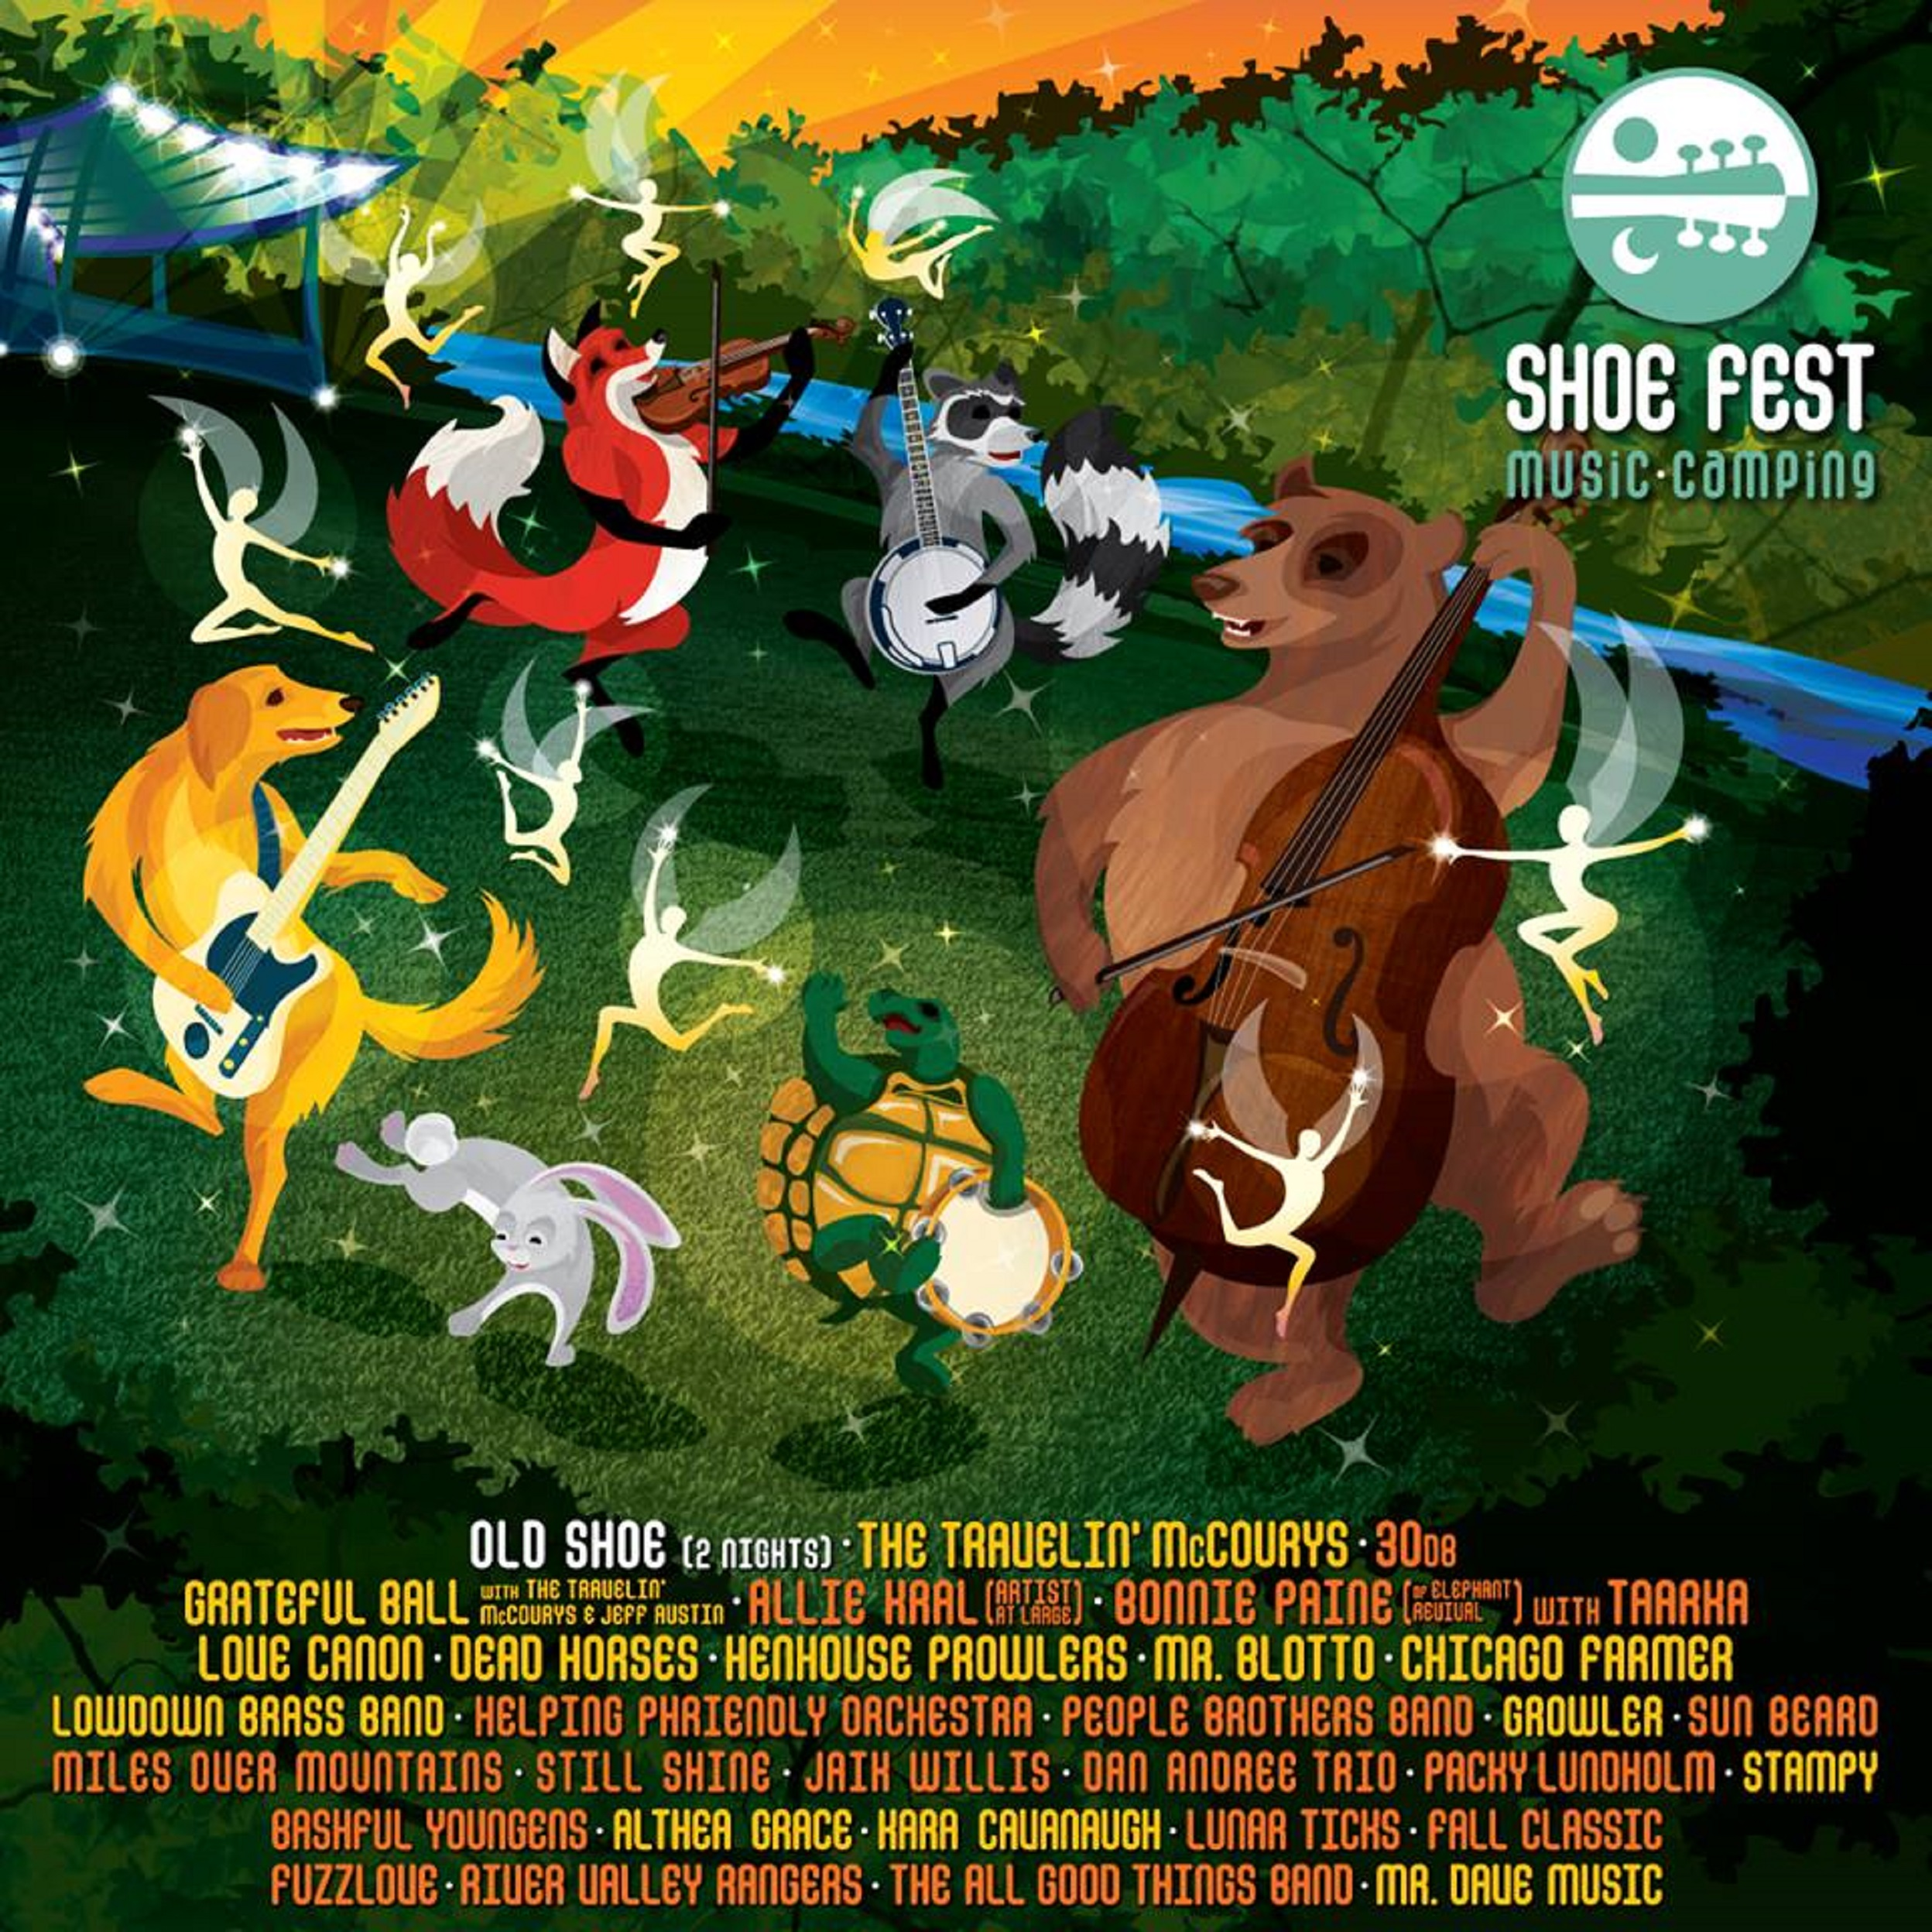 Shoe Fest announces 8th annual lineup